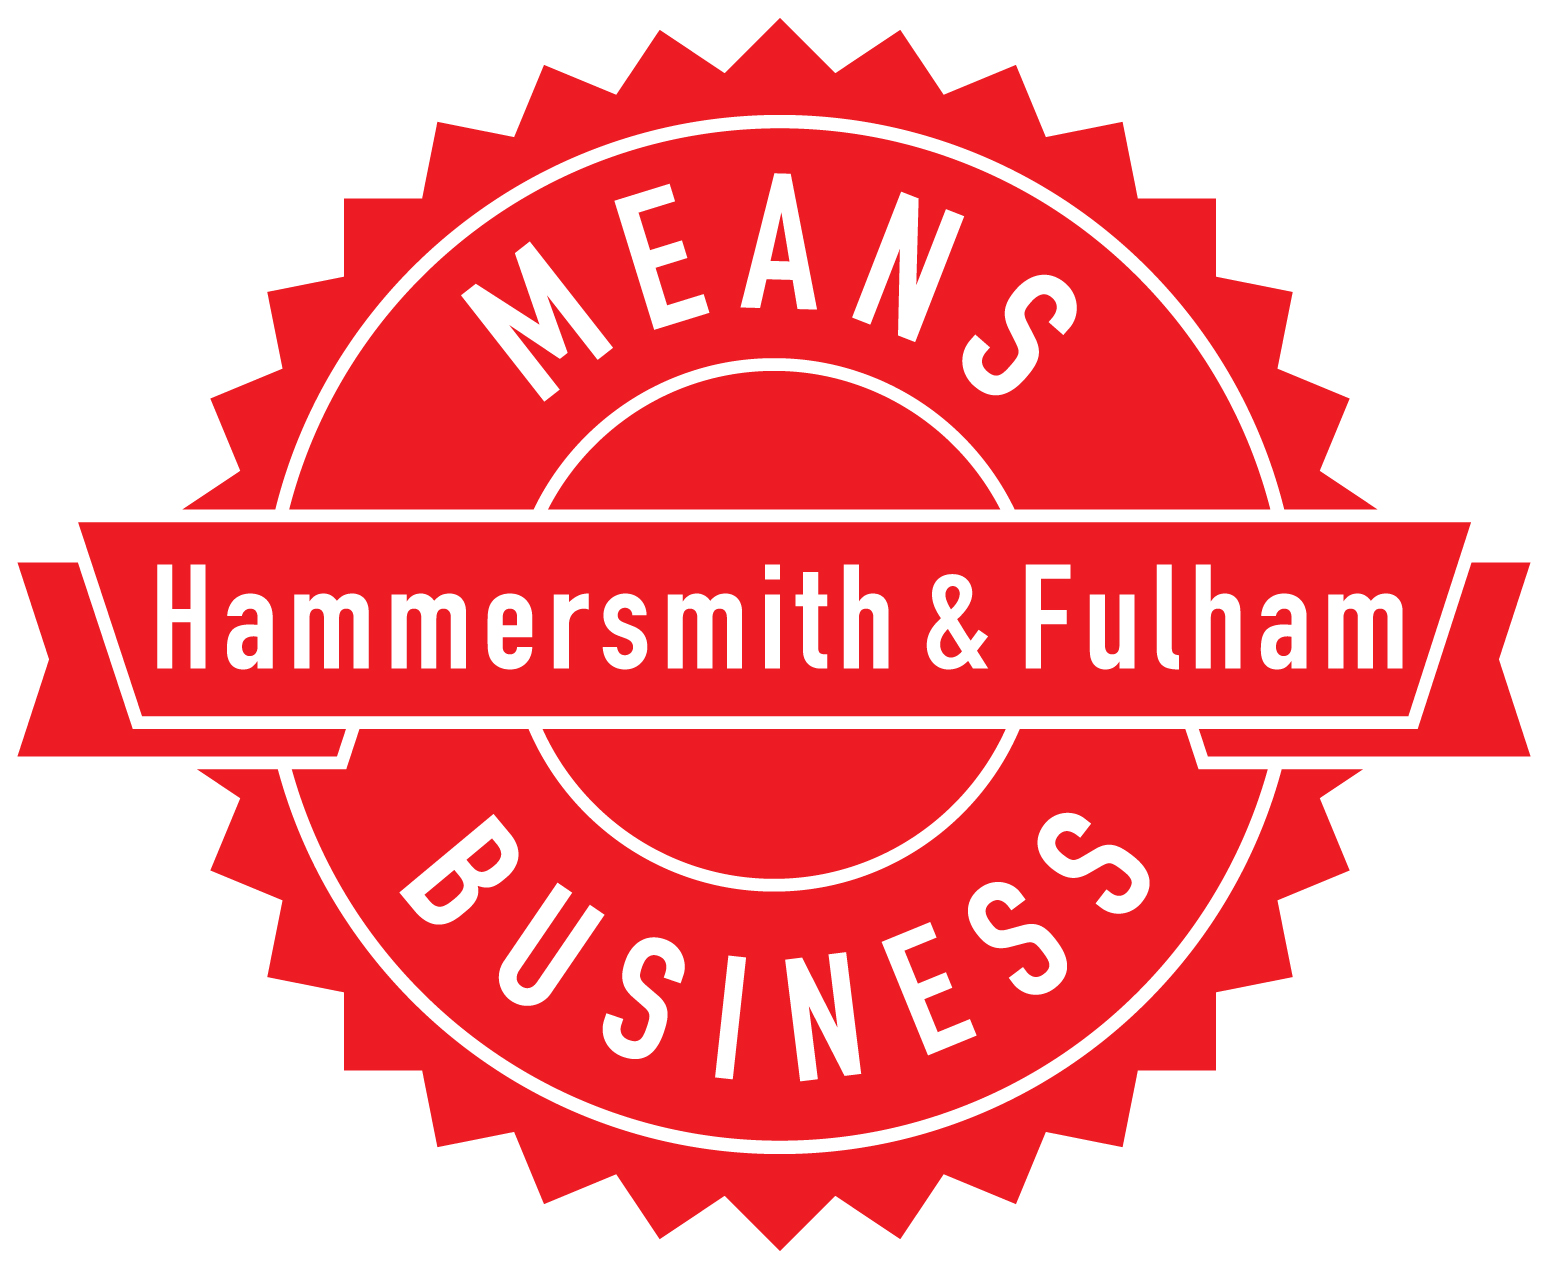 Come And Give Your Business A Boost At Hf Means Business Event Lbhf